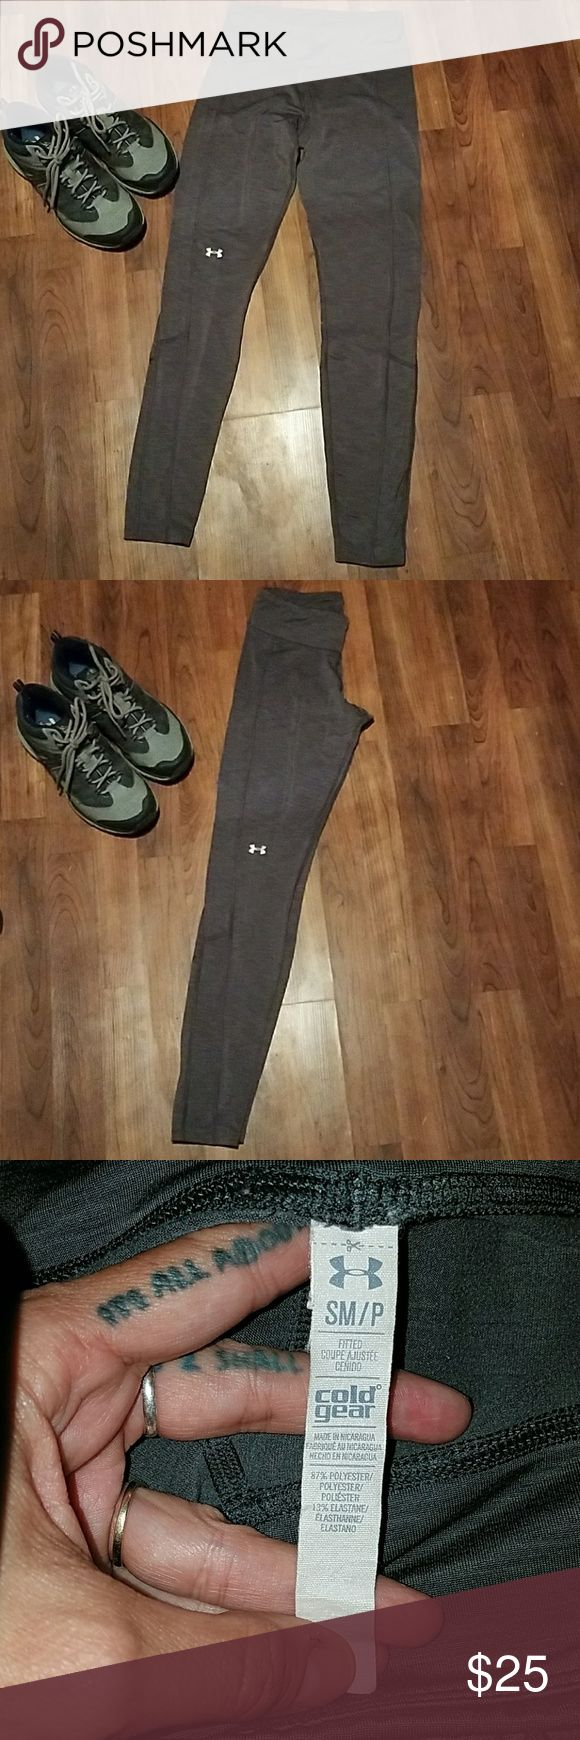 ♥UNDER ARMER Grey Yoga Skinny Pants sz Small Good Condition  Size Small  GREY- LAST Picture shows TRUE color. Mild wear/very mild PILING Workout Leggings Under Armour Pants Skinny